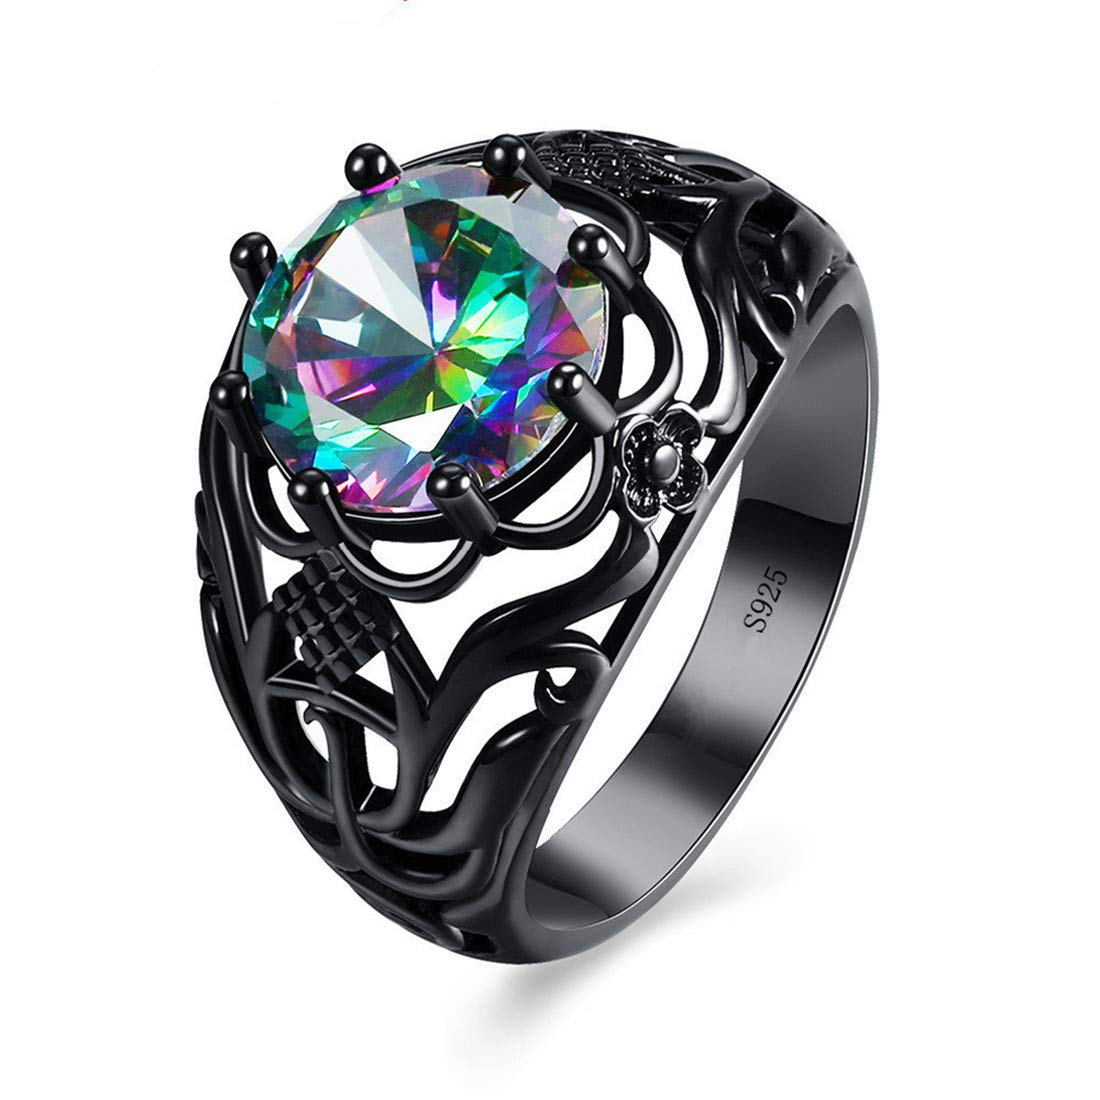 UINKE Exquisite Black Plated Carving Hollow Cubic Zirconia Rings Punk Style Jewelry for Women Men,8#